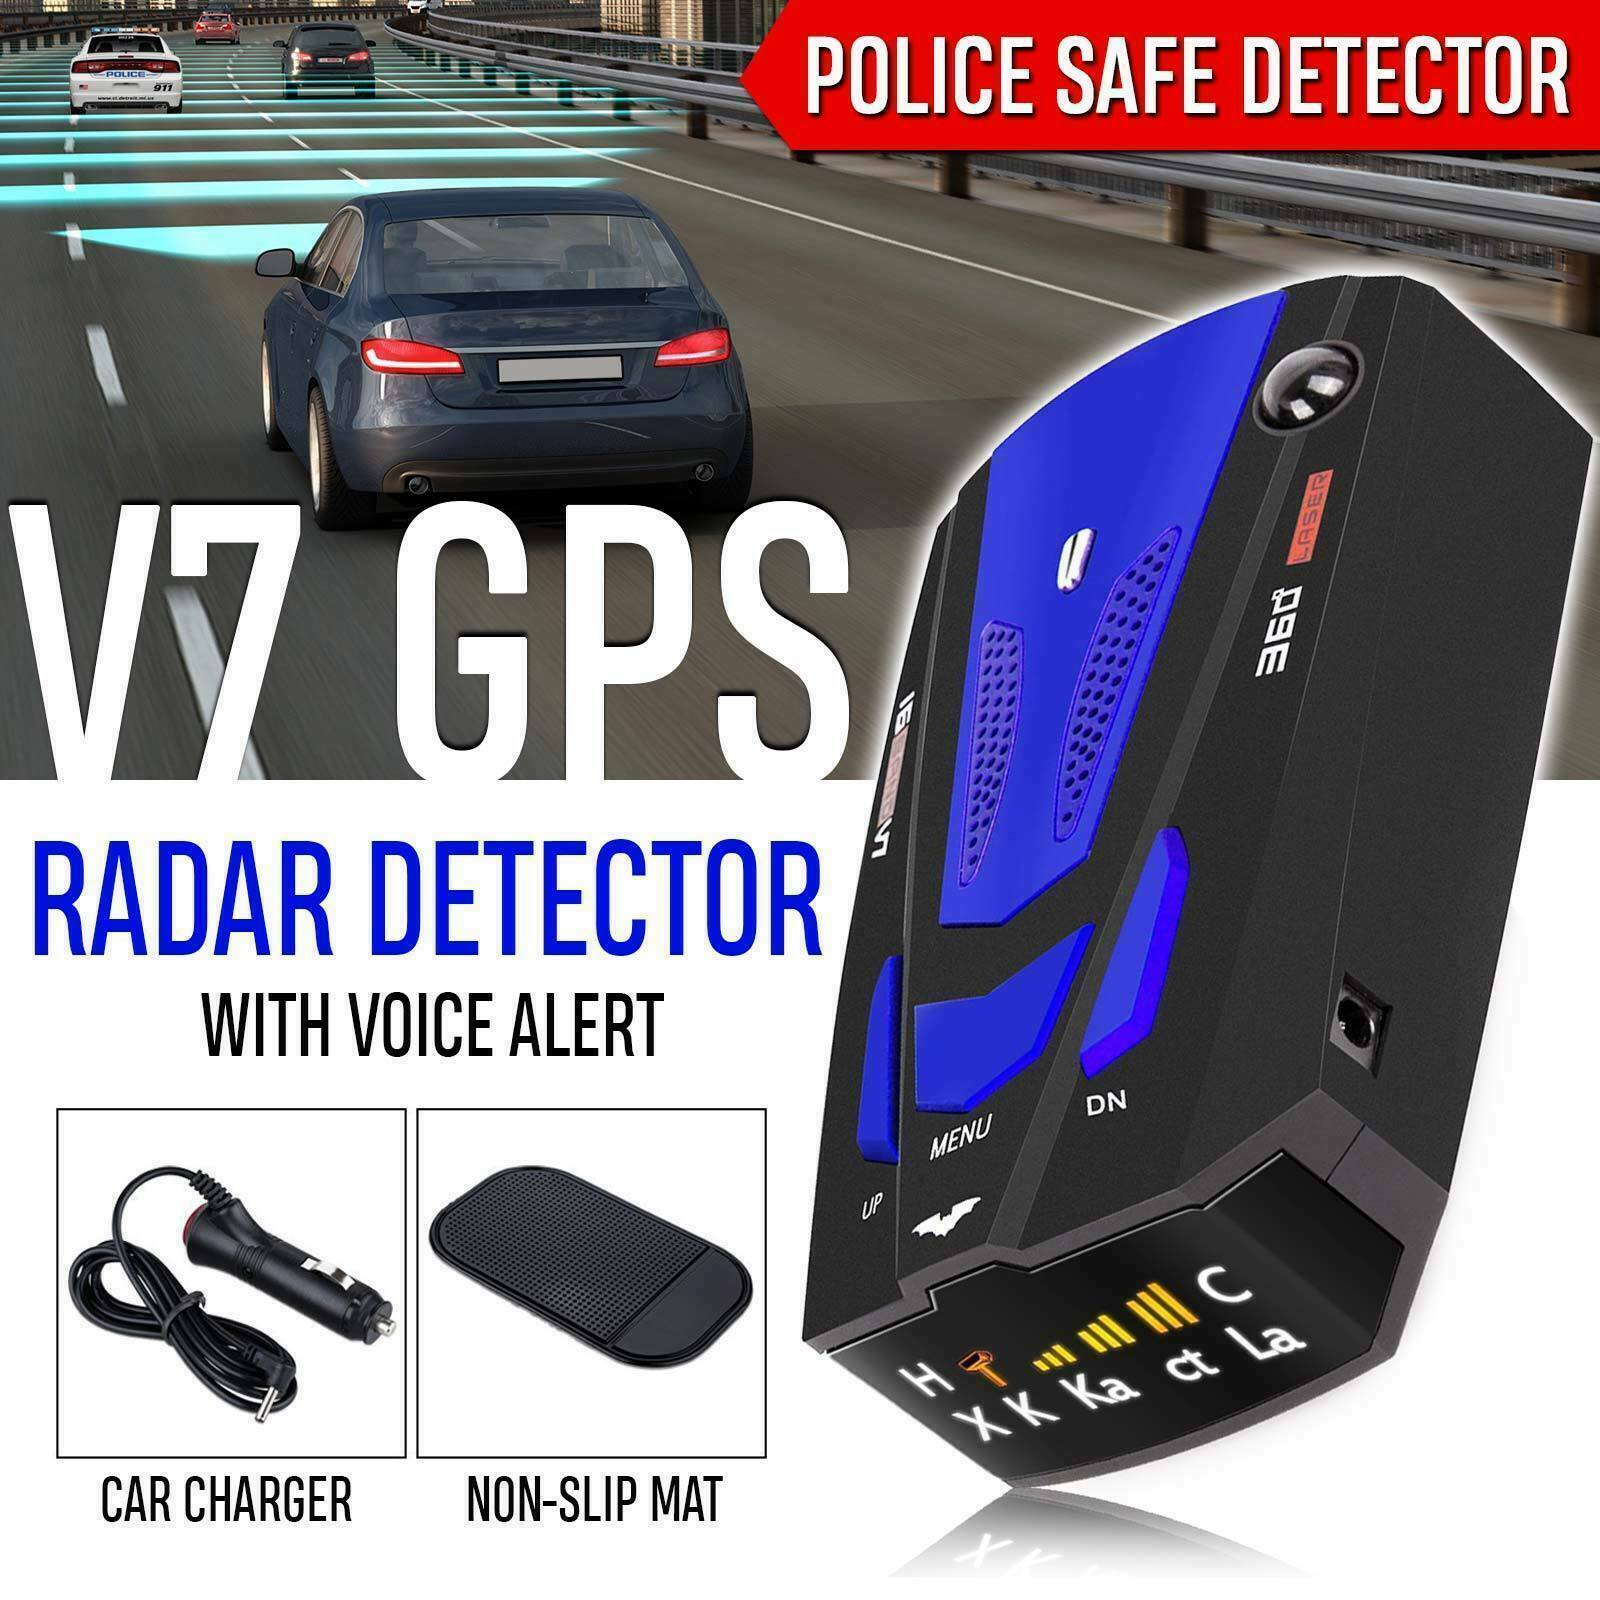 V7 360 Degrees Bands Car Radar Detector GPS Speed Police Safety Voice Alert 12V